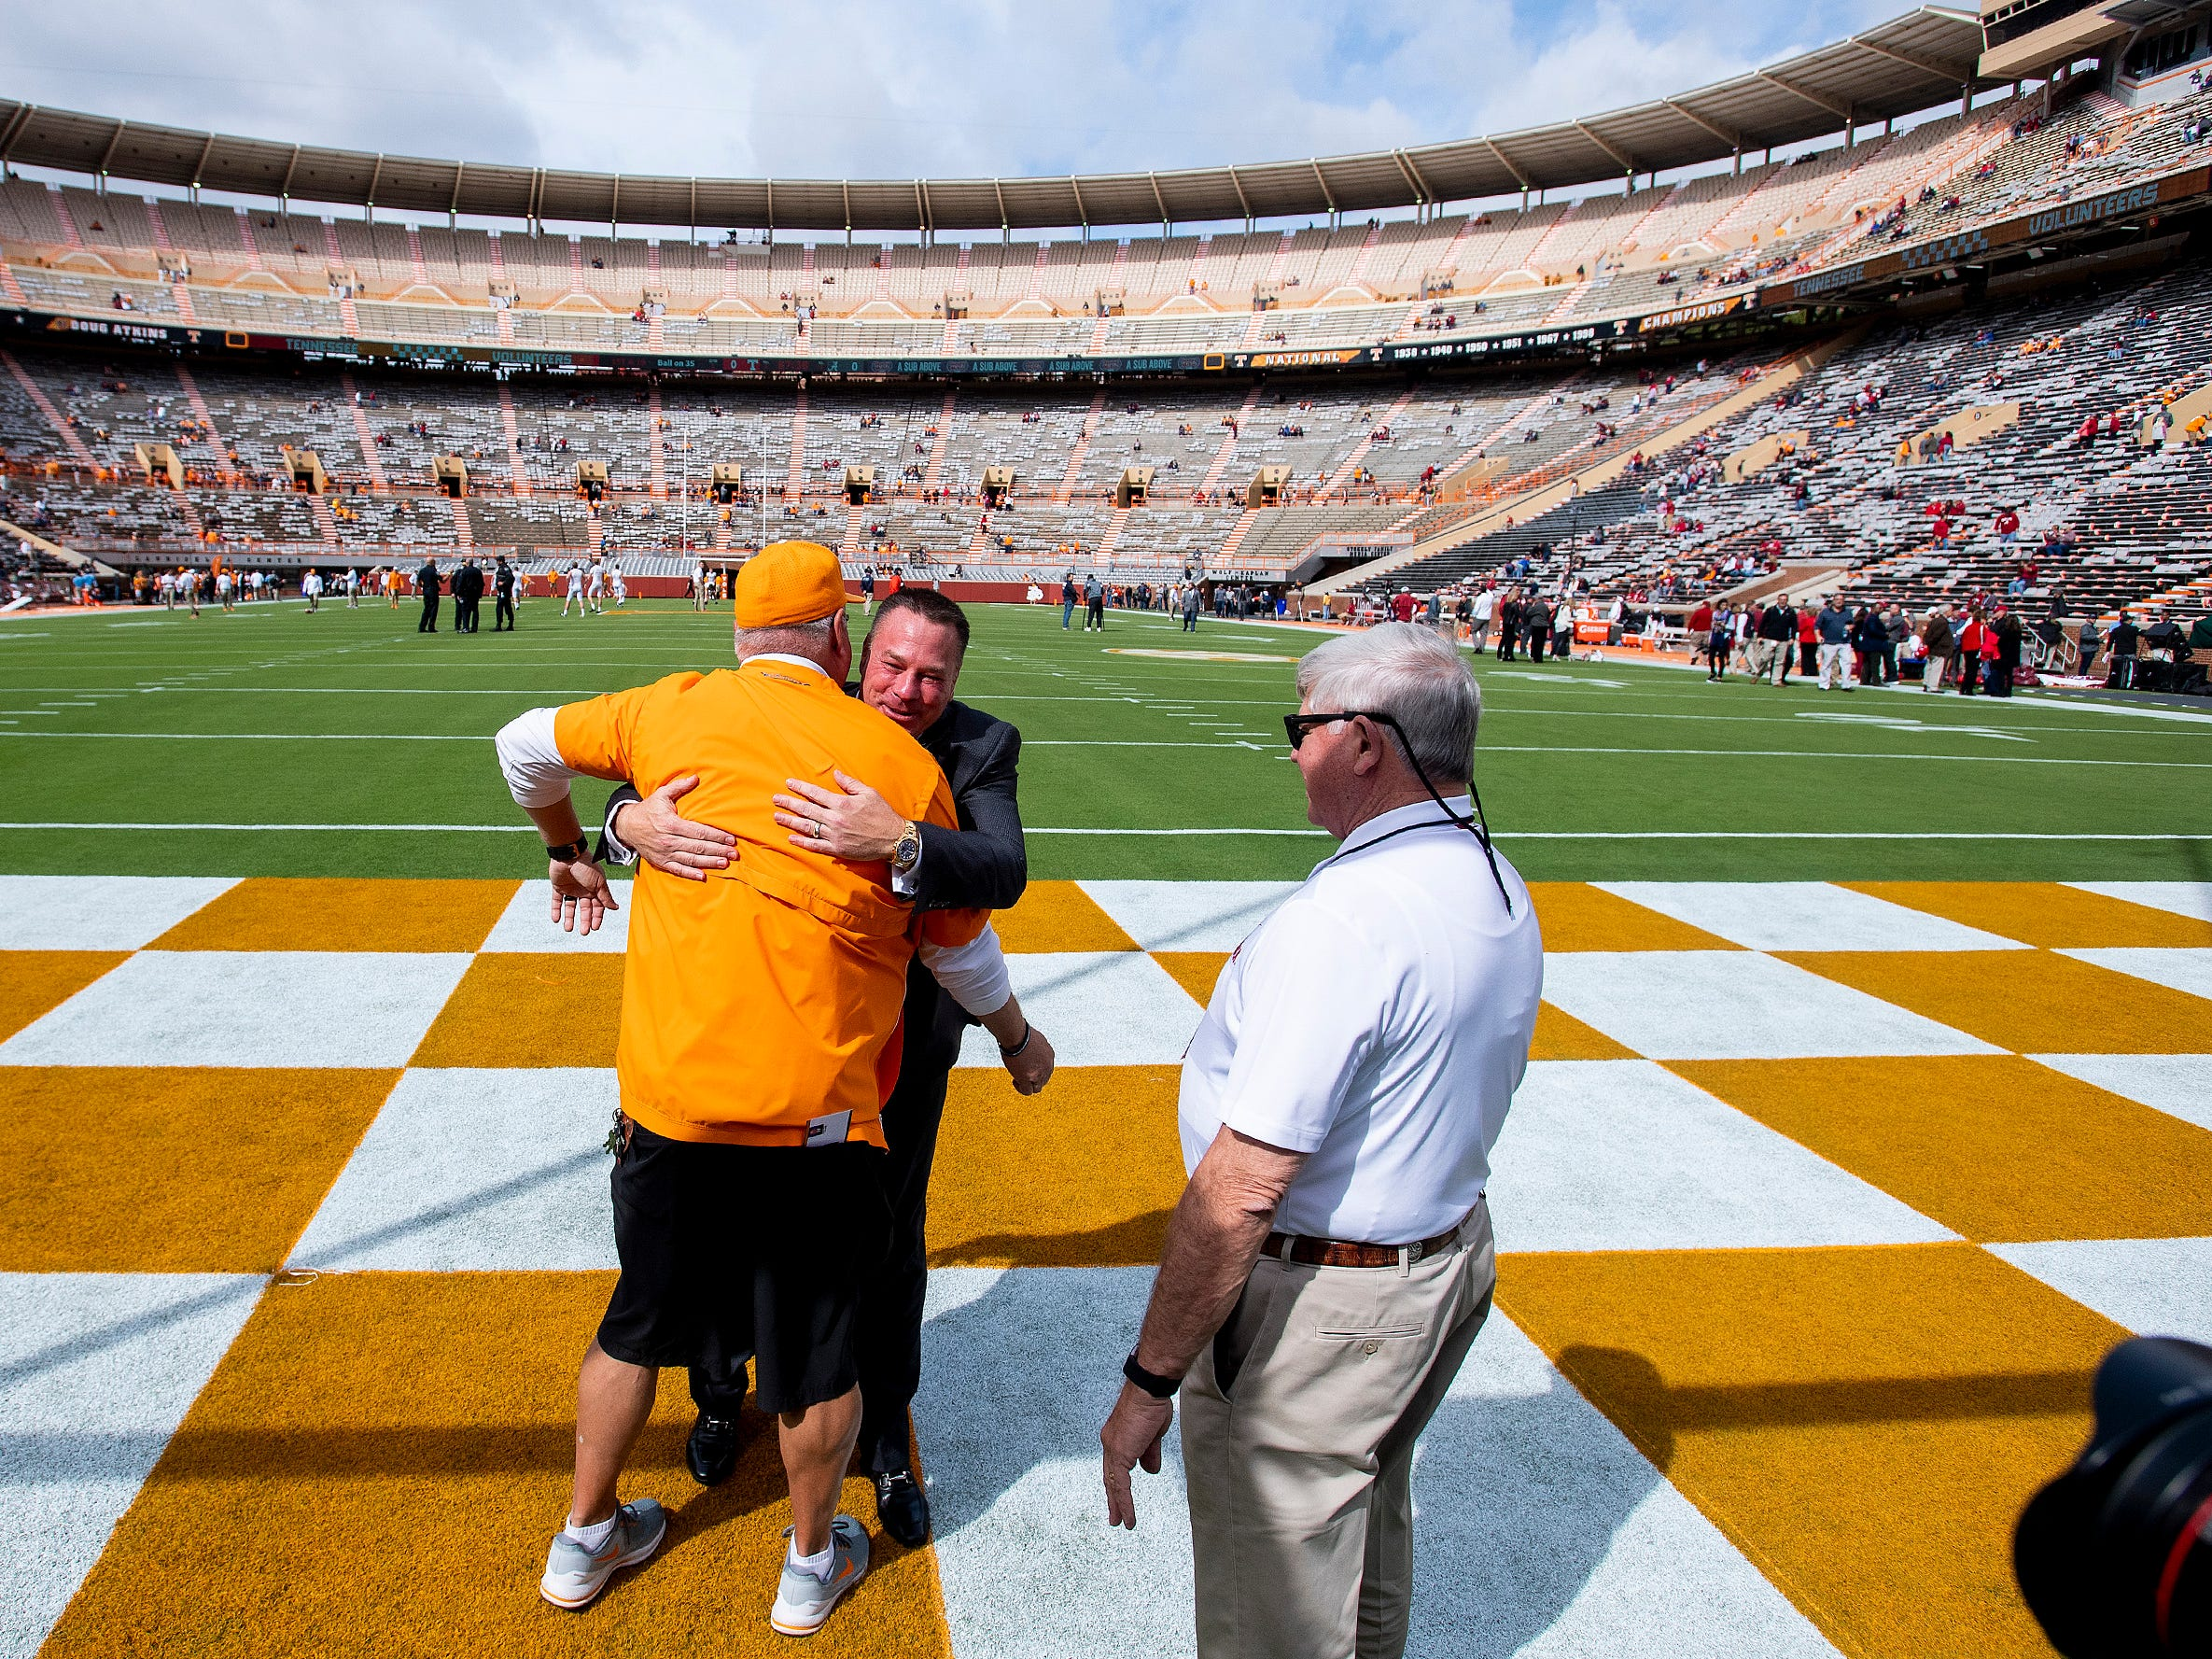 Alabama analyst Butch Jones hugs a friend as Alabama arrives for the Tennessee game at Neyland Stadium in Knoxville, Tn., on Saturday October 20, 2018.